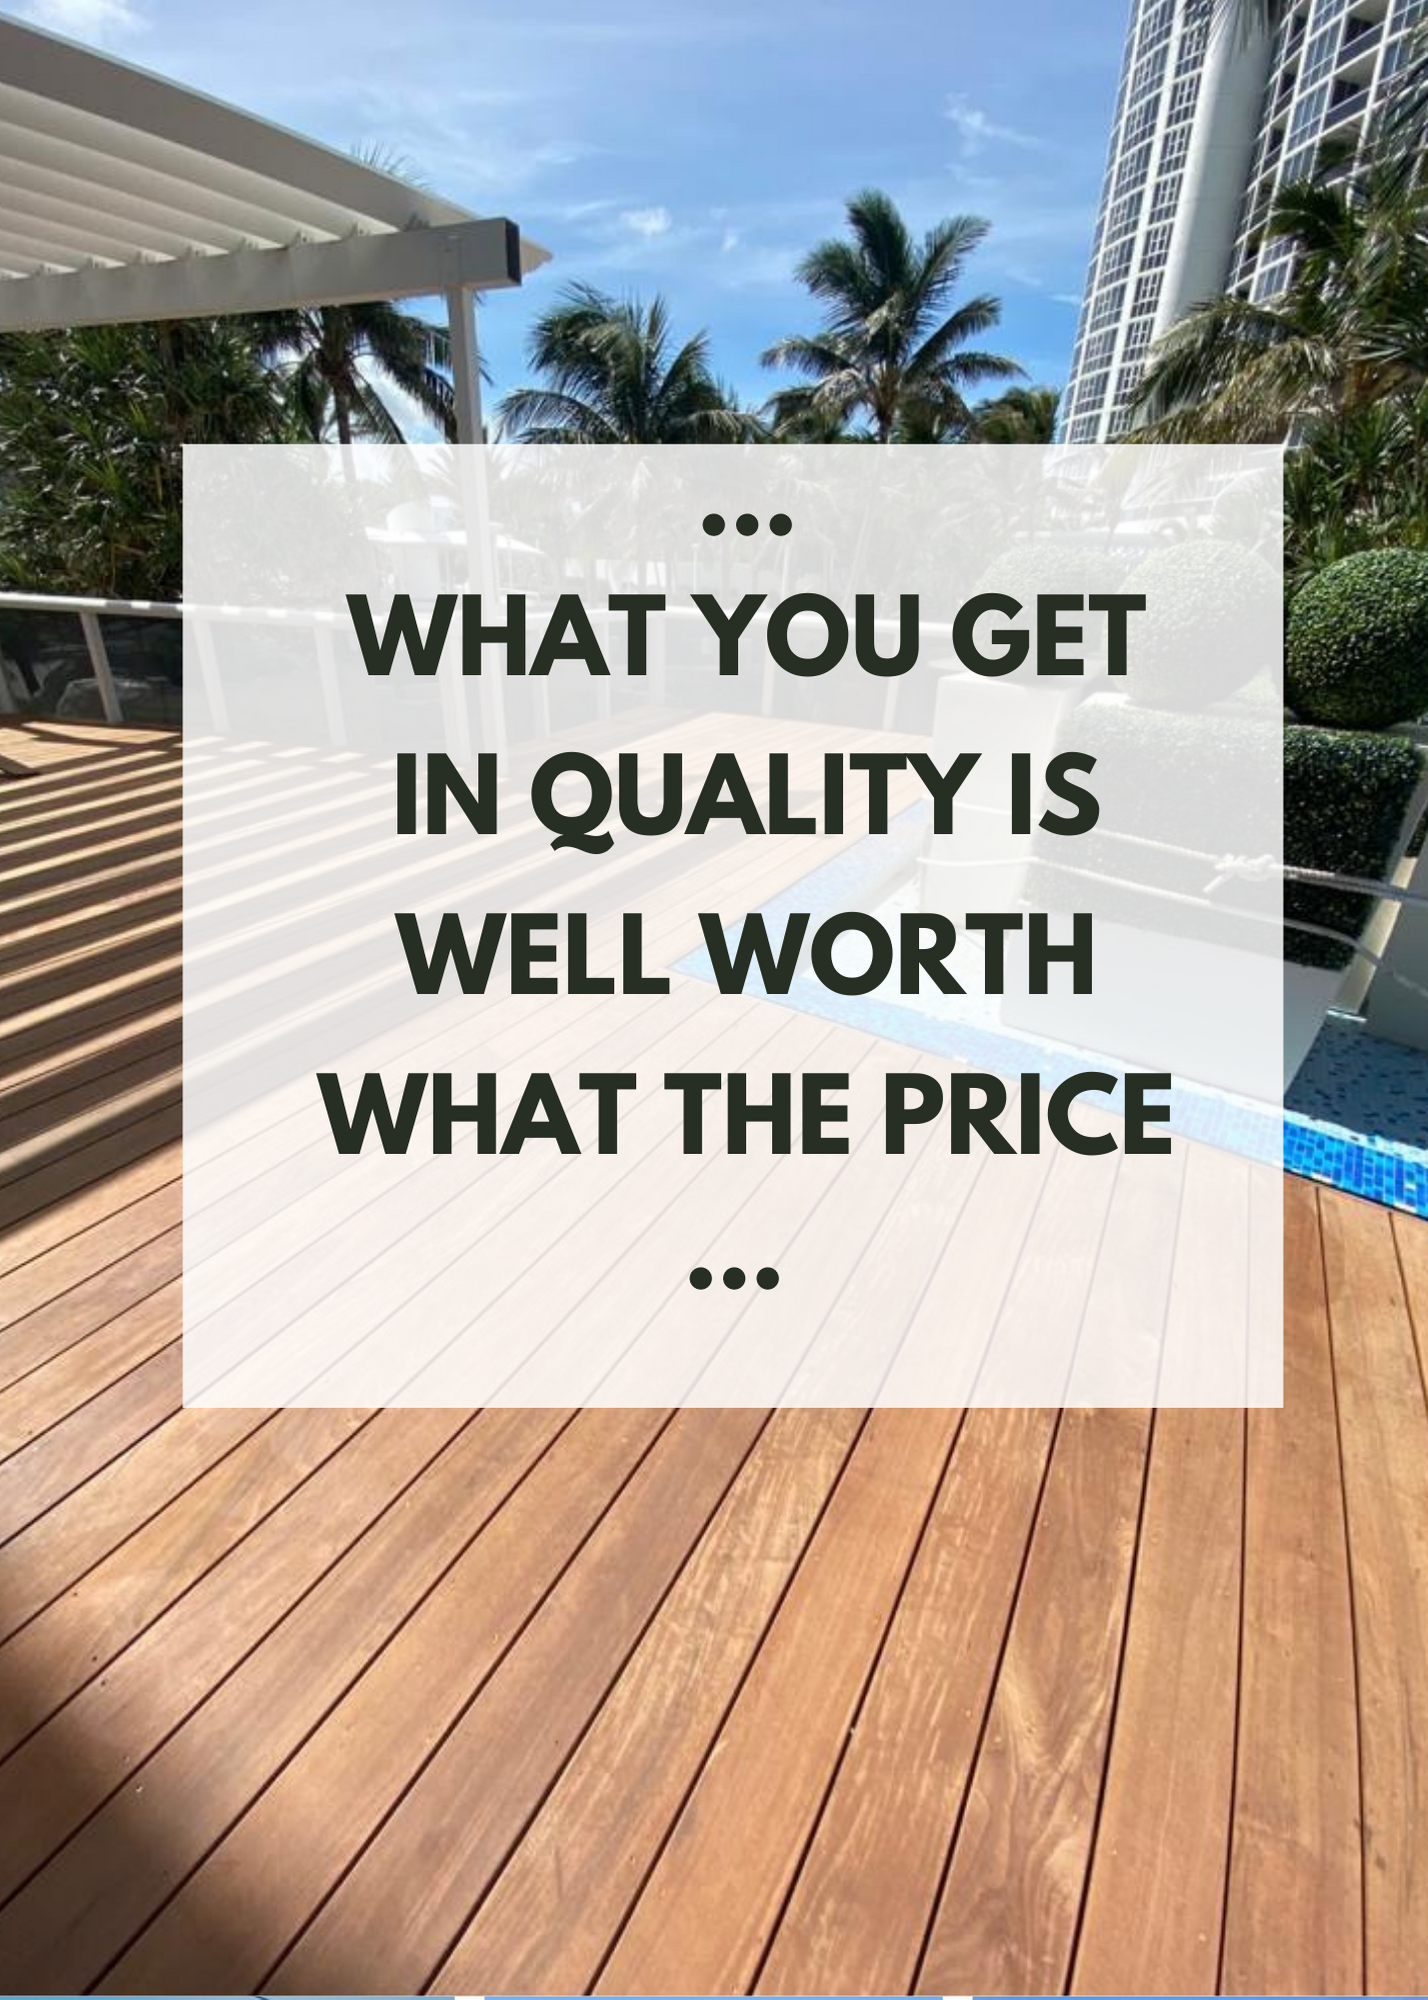 background image of a hardwood deck with a San Diego high rise with writing What you get in quality is worth the price